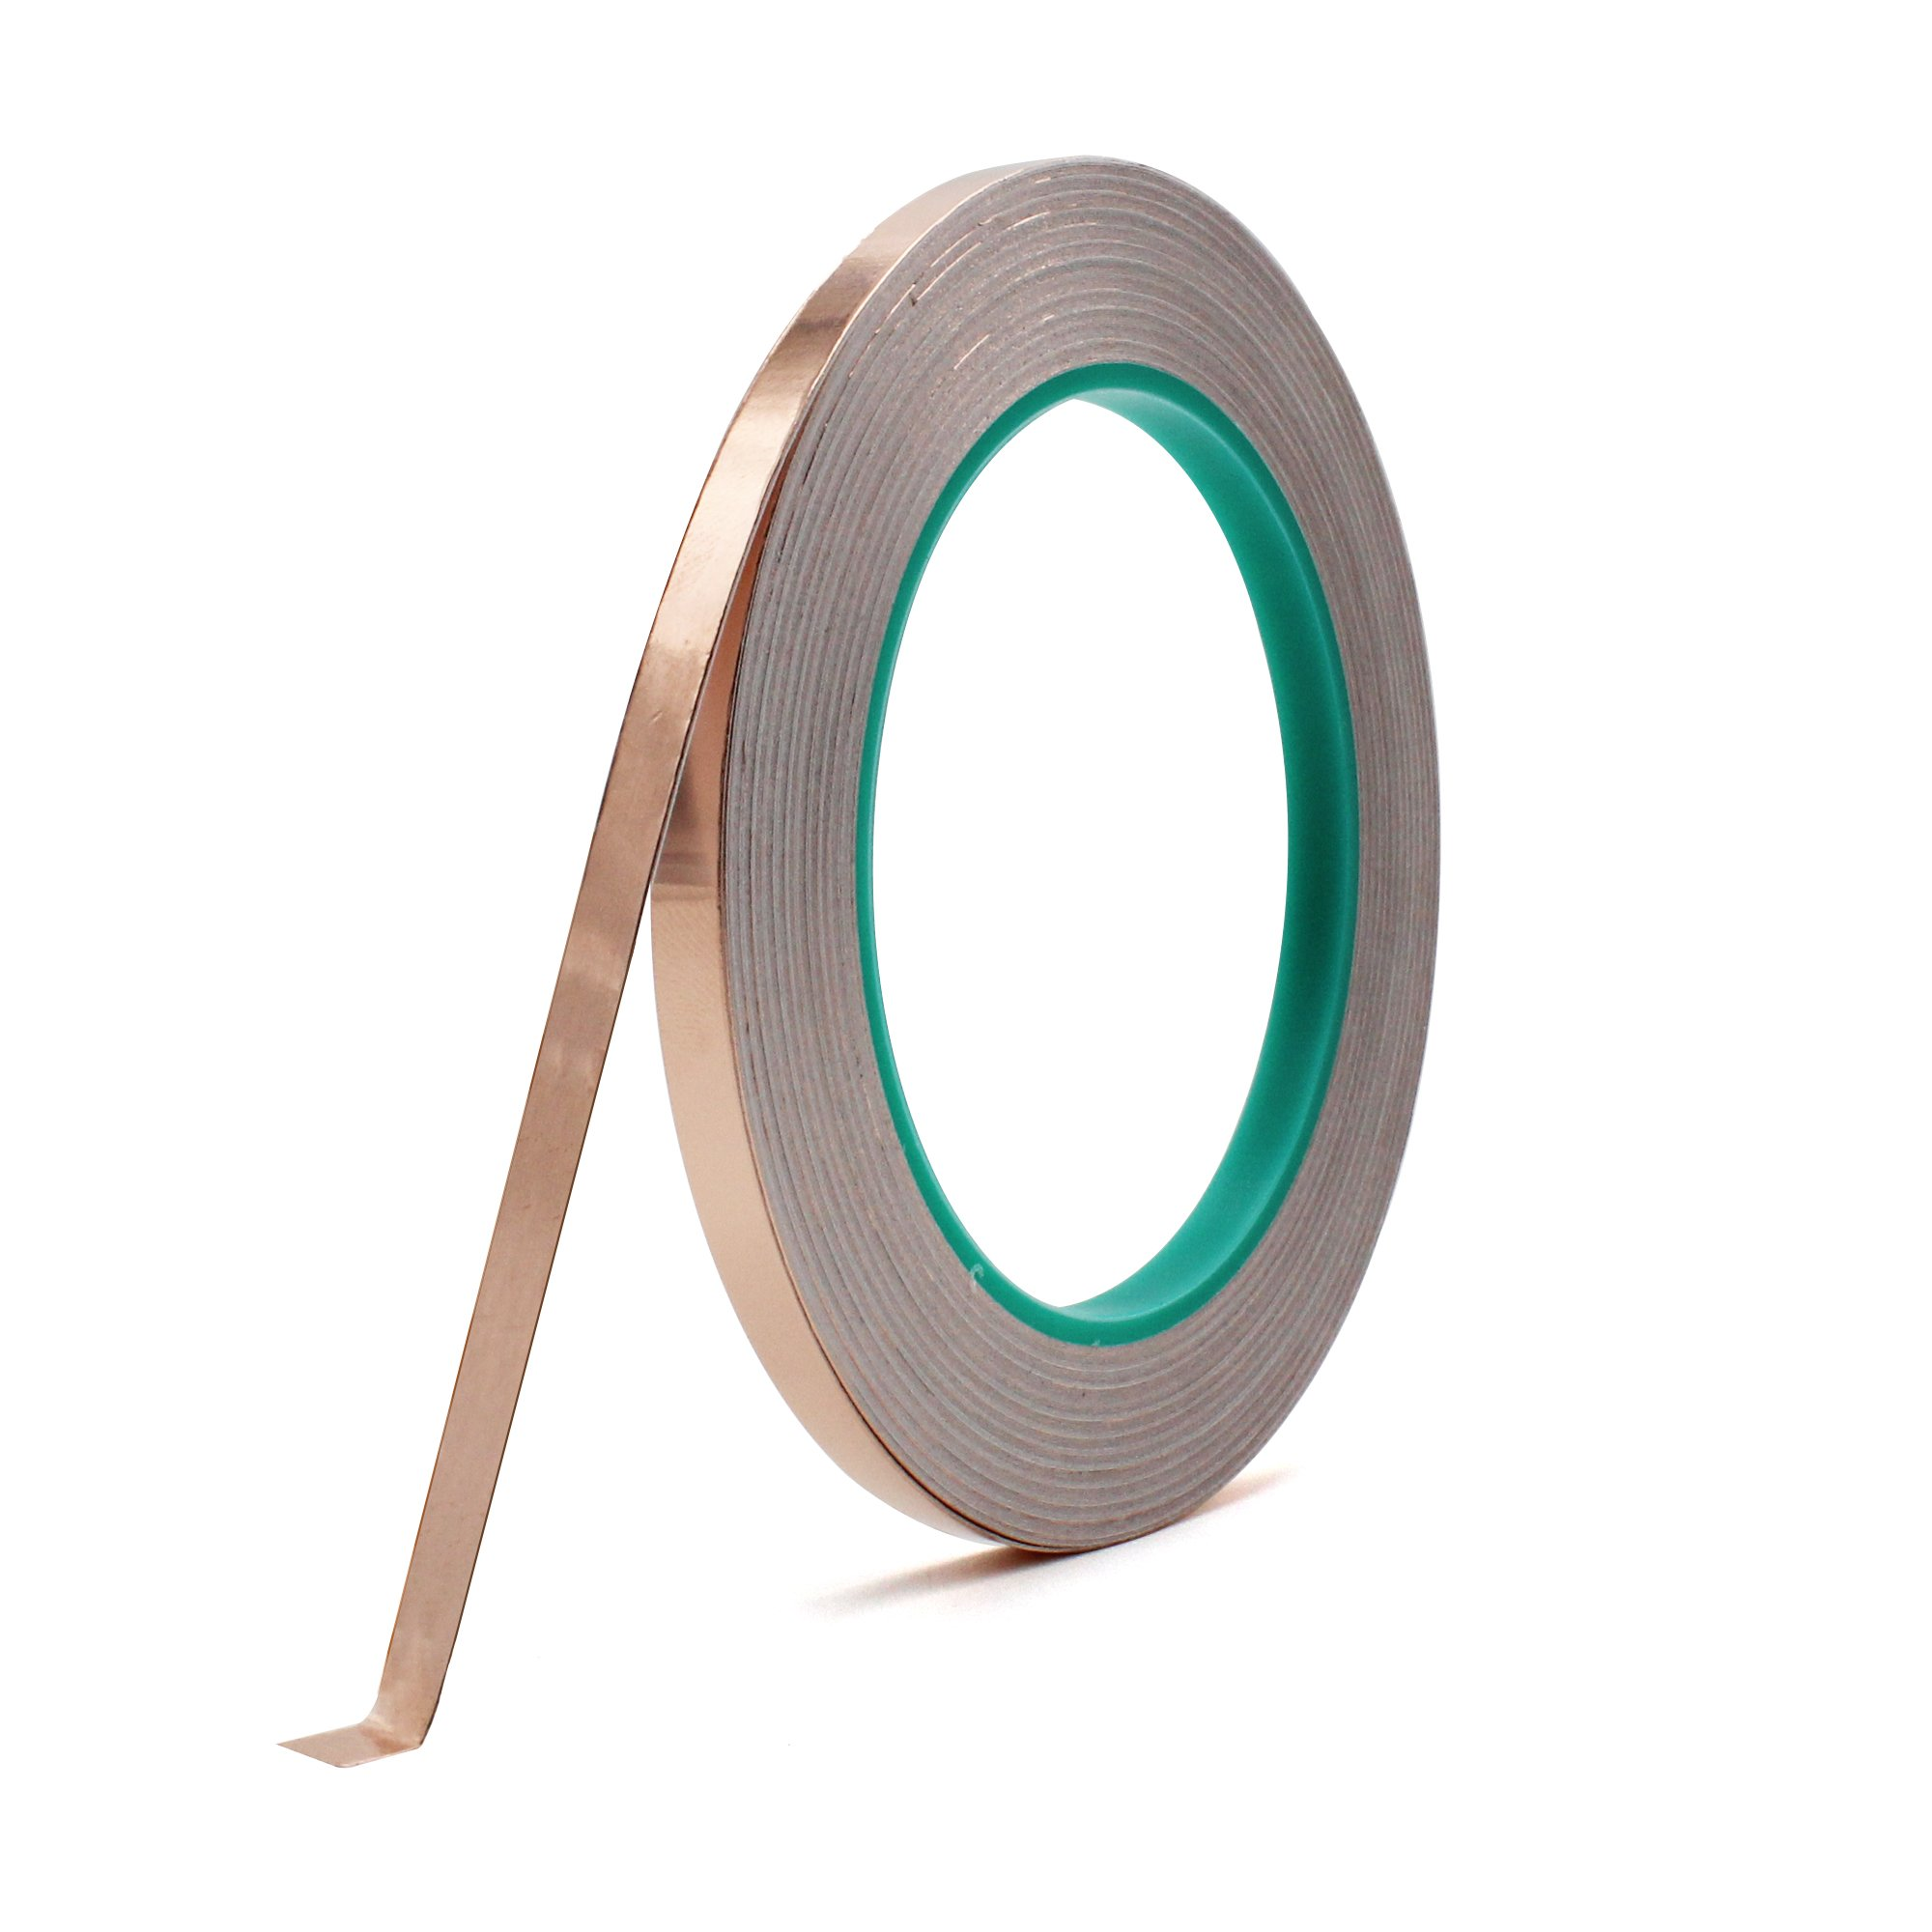 Copper Foil Tape, Atemto 1/4inch X 27yds Foiling Tape with Double Sided Conductive Adhesive for Shielding Slug Repellent Circuits Crafting EMI Soldering Stained Glass Electrical Repair Grounding